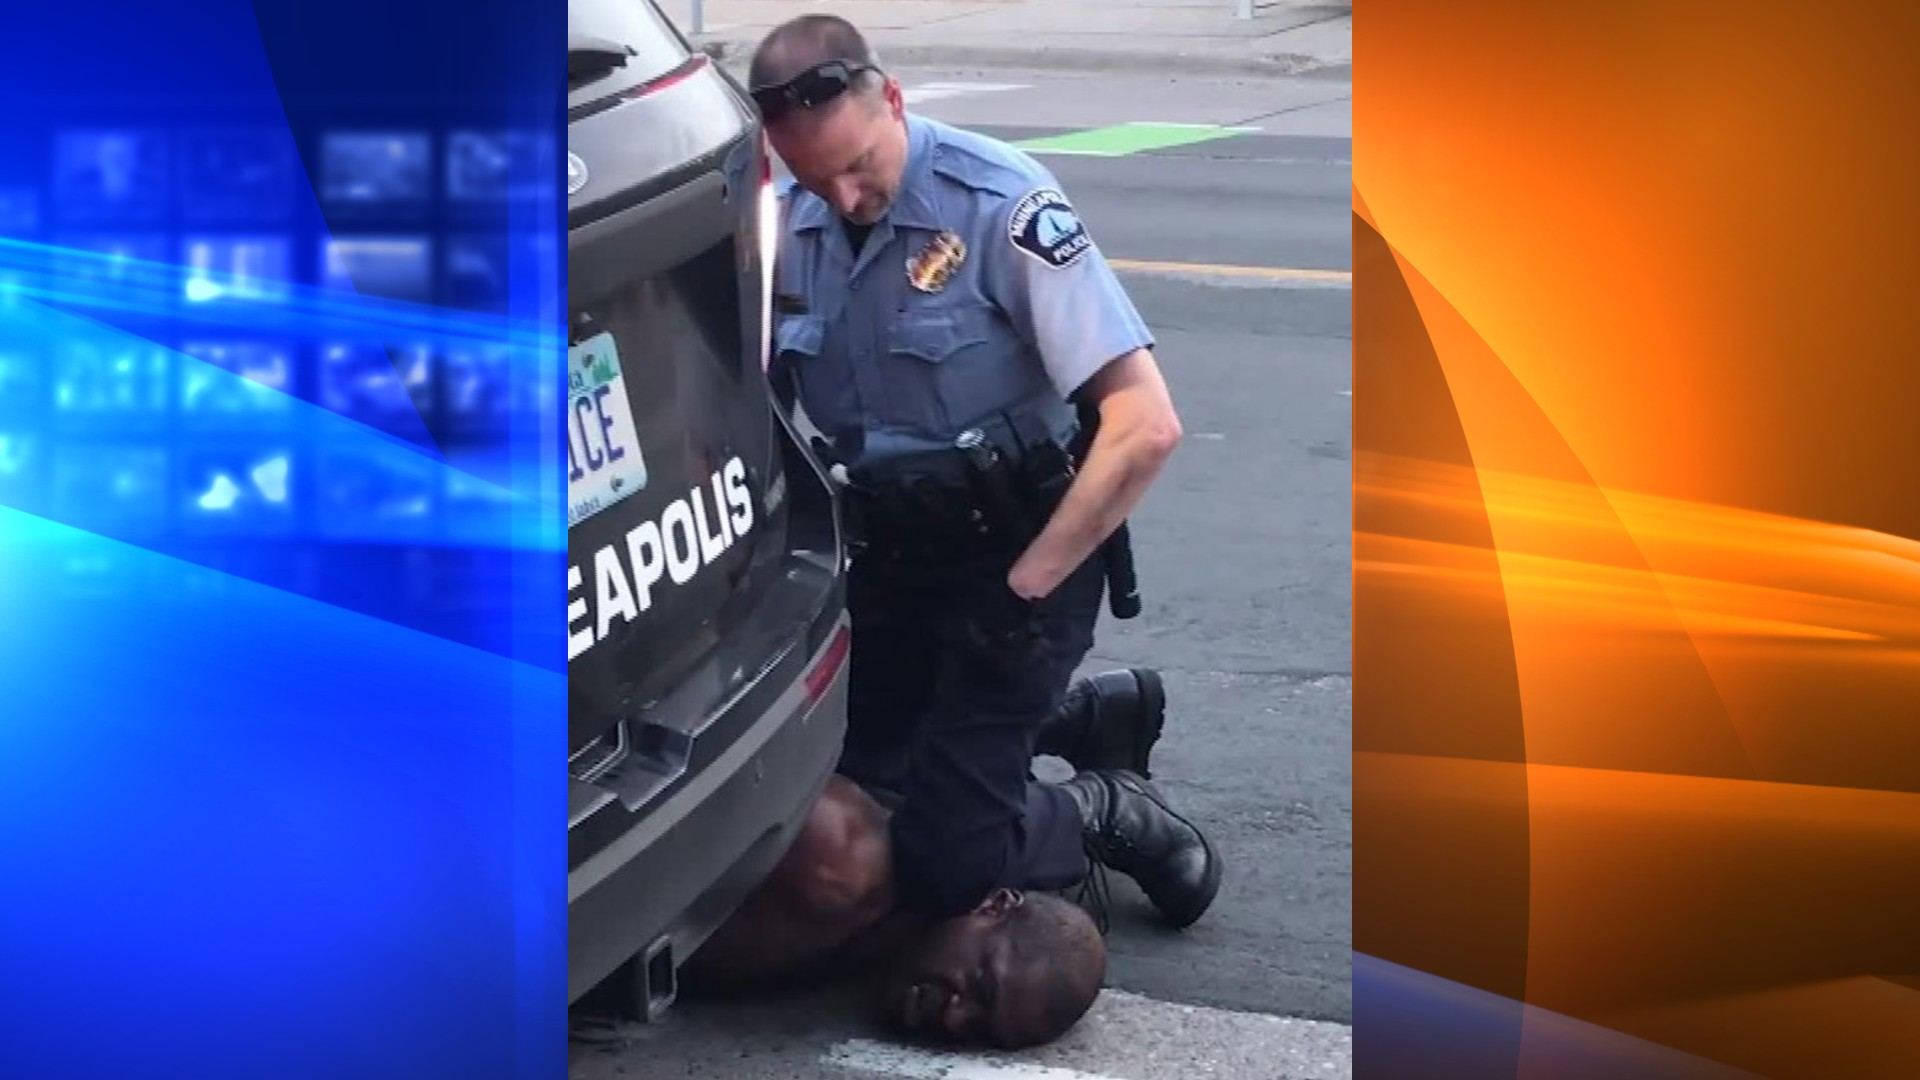 Officer Derek Chauvin is shown kneeling on George Floyd's neck on May 25, 2020, in a still from a video taken by Darnella Frazier and distributed by CNN.